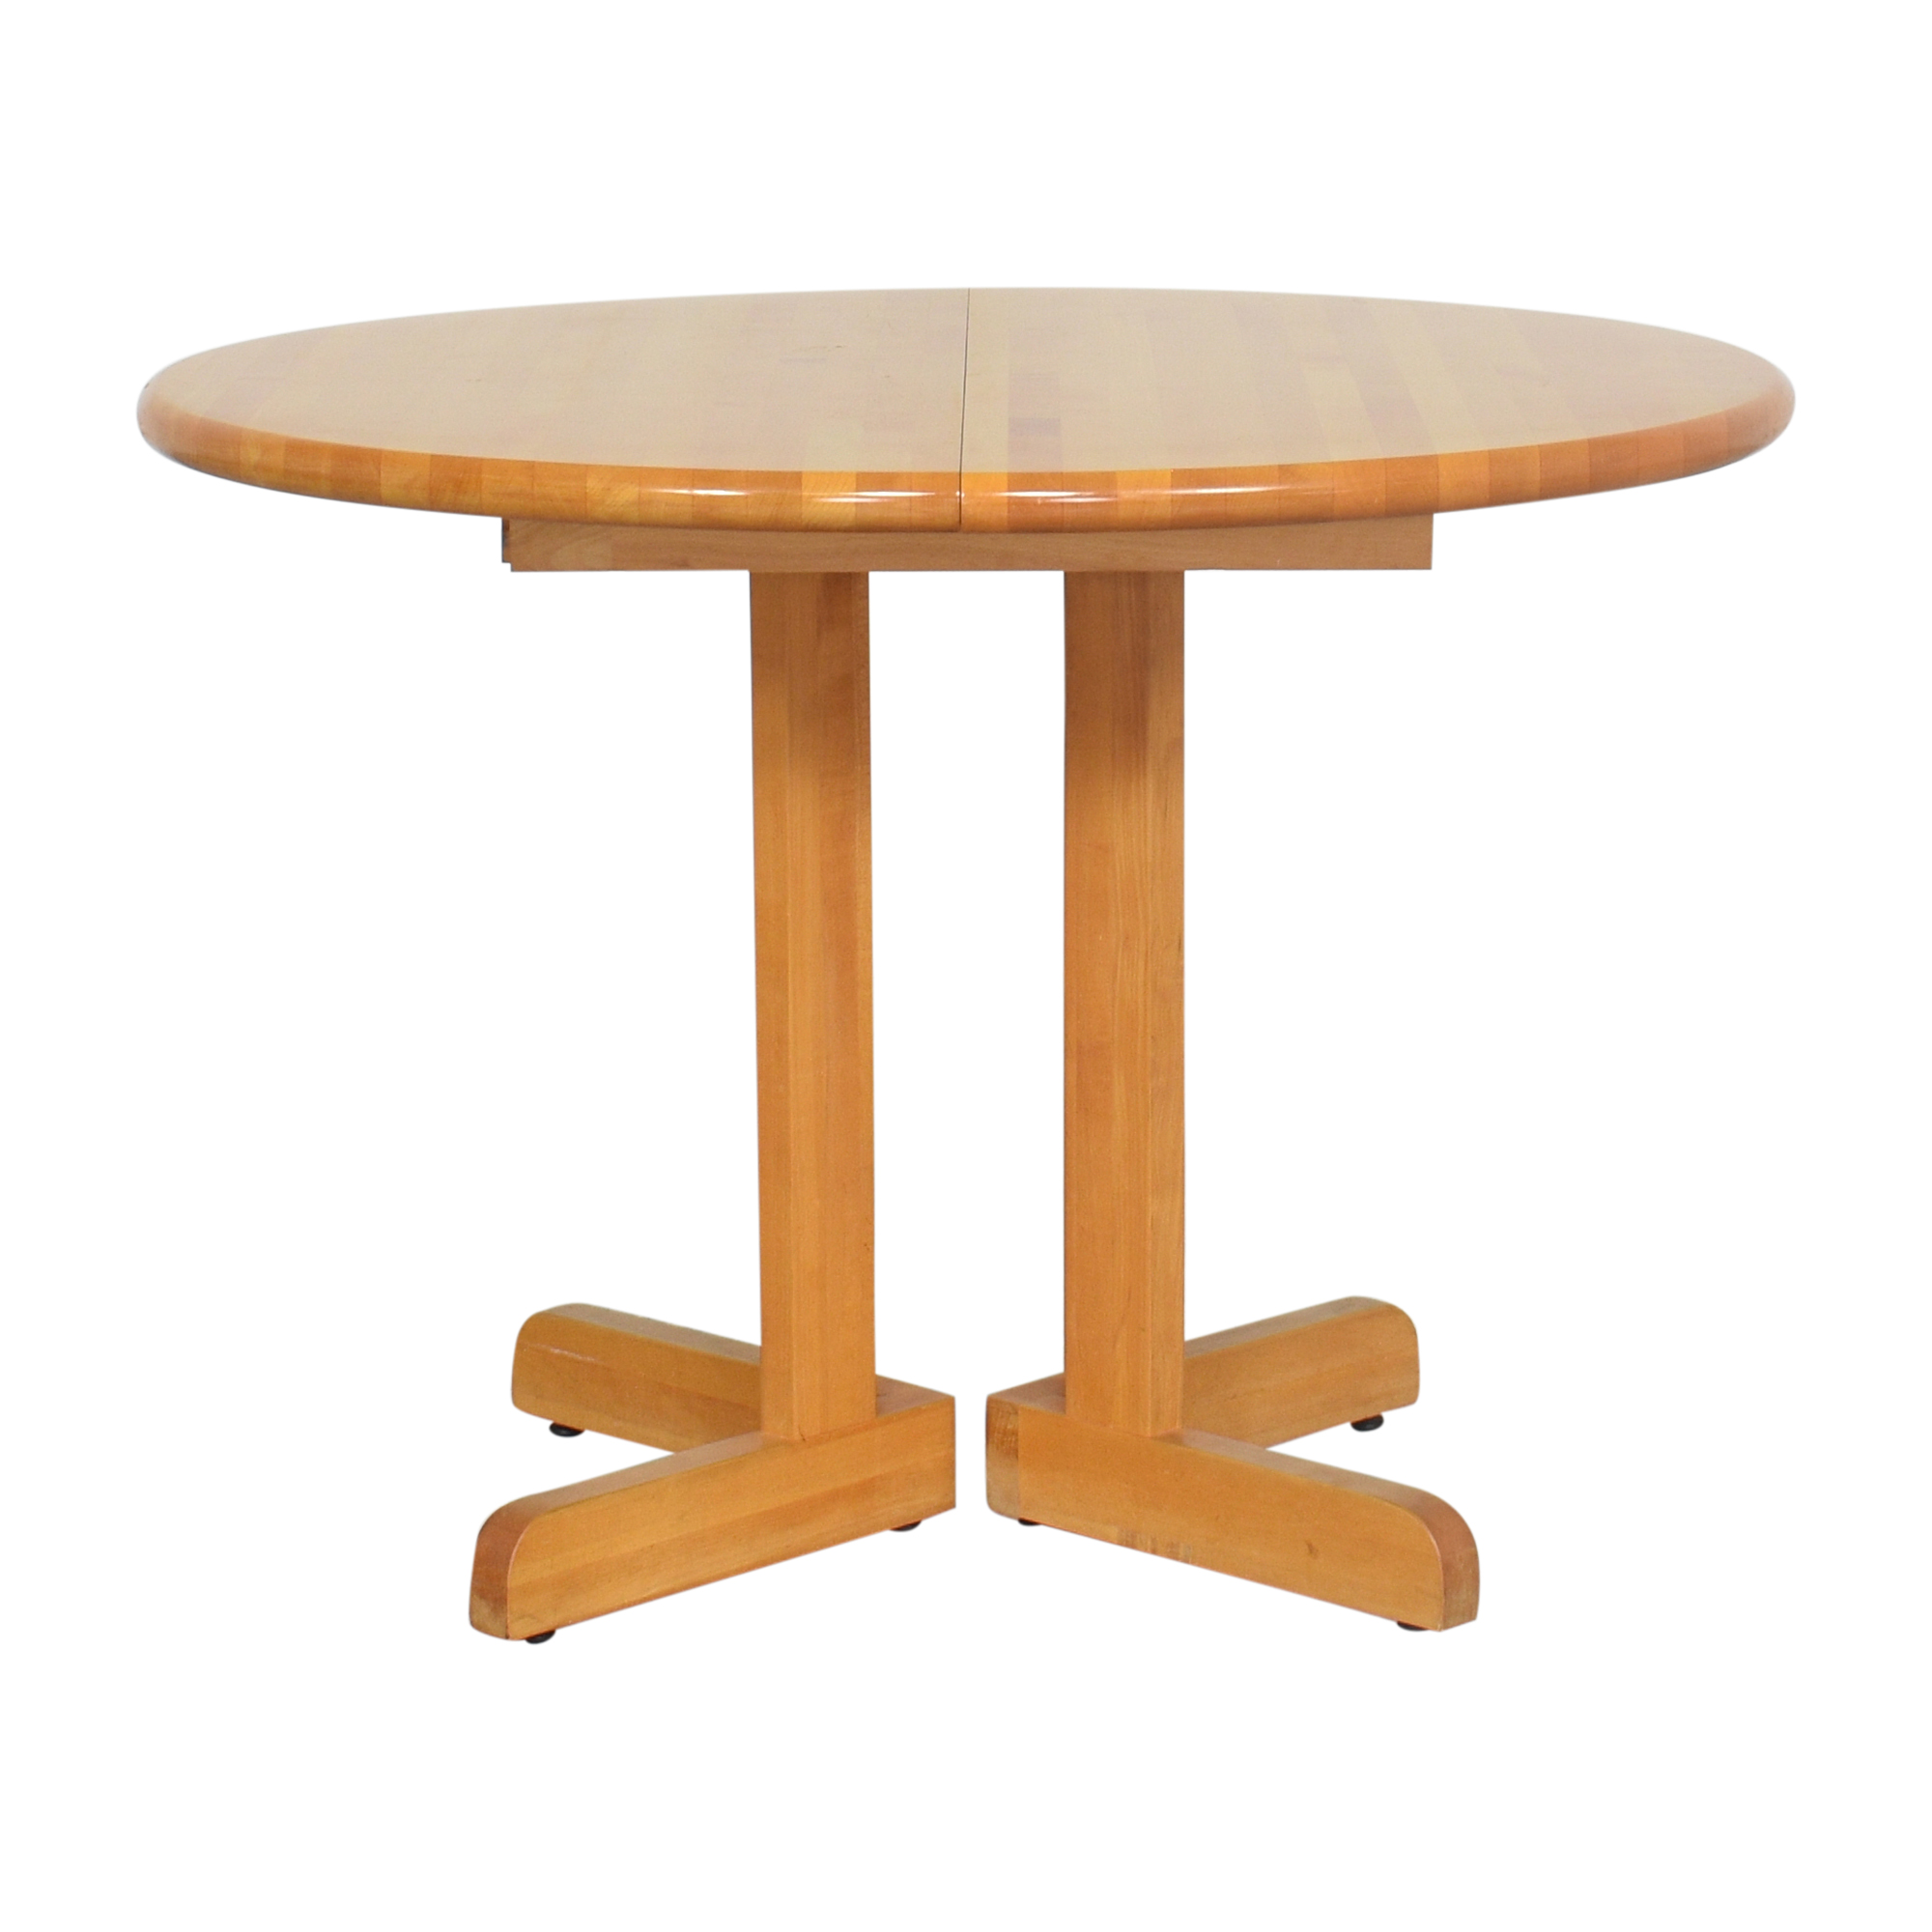 Walter of Wabash Walter of Wabash Round Extendable Dining Table for sale